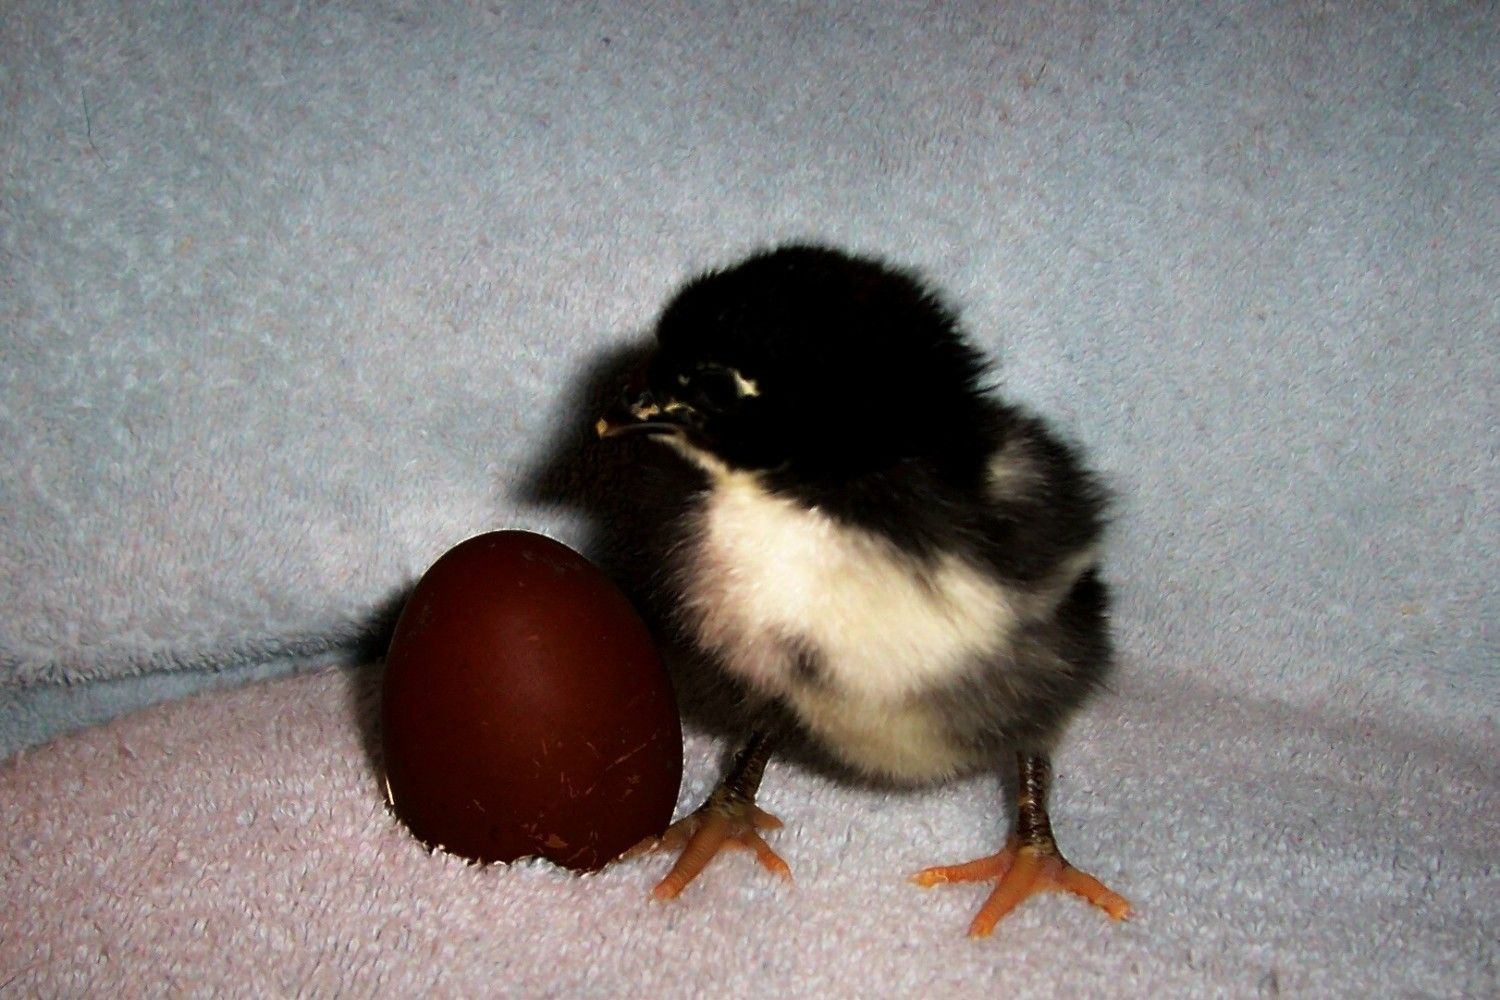 BCM roo from a dark egg showing scant leg feathering